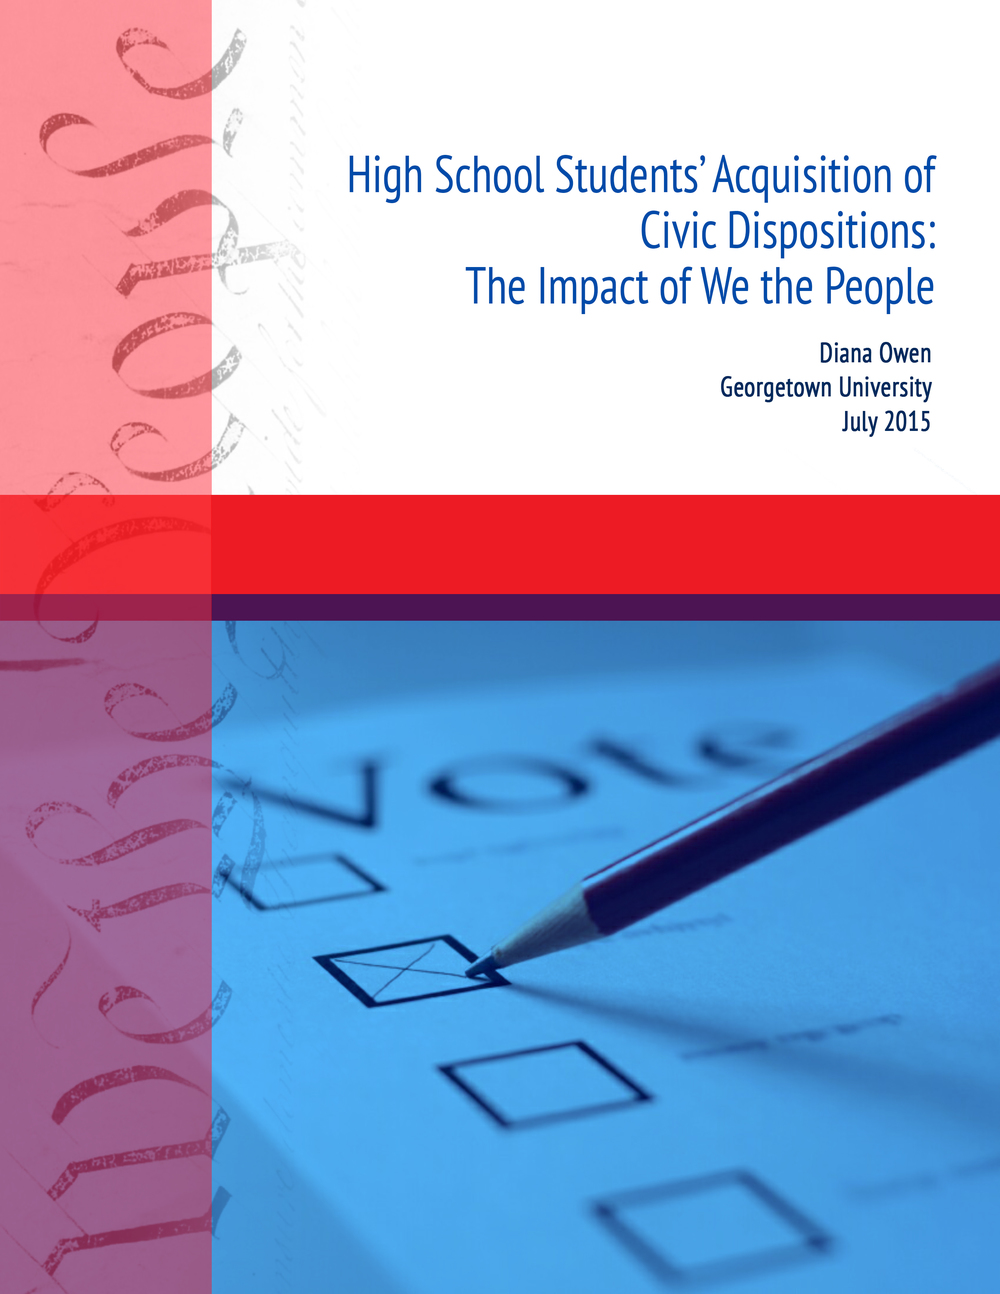 A cover page for a Georgetown University and Center for Civic Education (CCE) report on civic dispositions in We the People civic education classrooms. This design includes three thematic iterations, adorning the cover of two subsequent reports currently in progress. Access the full report, which I contributed to as a Research Assistant, on the CCE website.